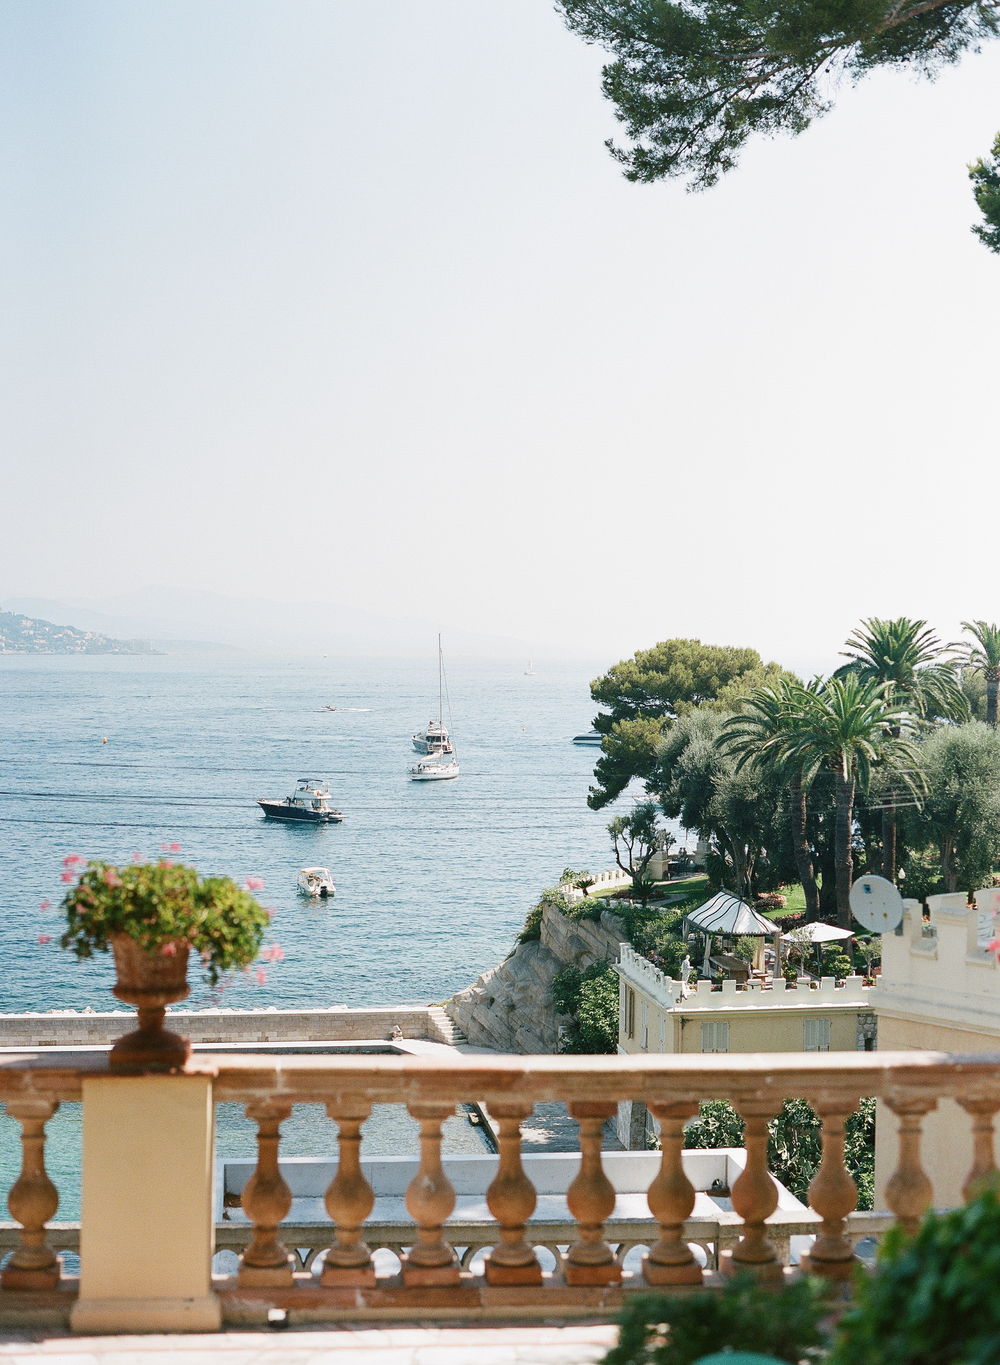 A balcony view of the French Riviera; photo by Sylvie Gil